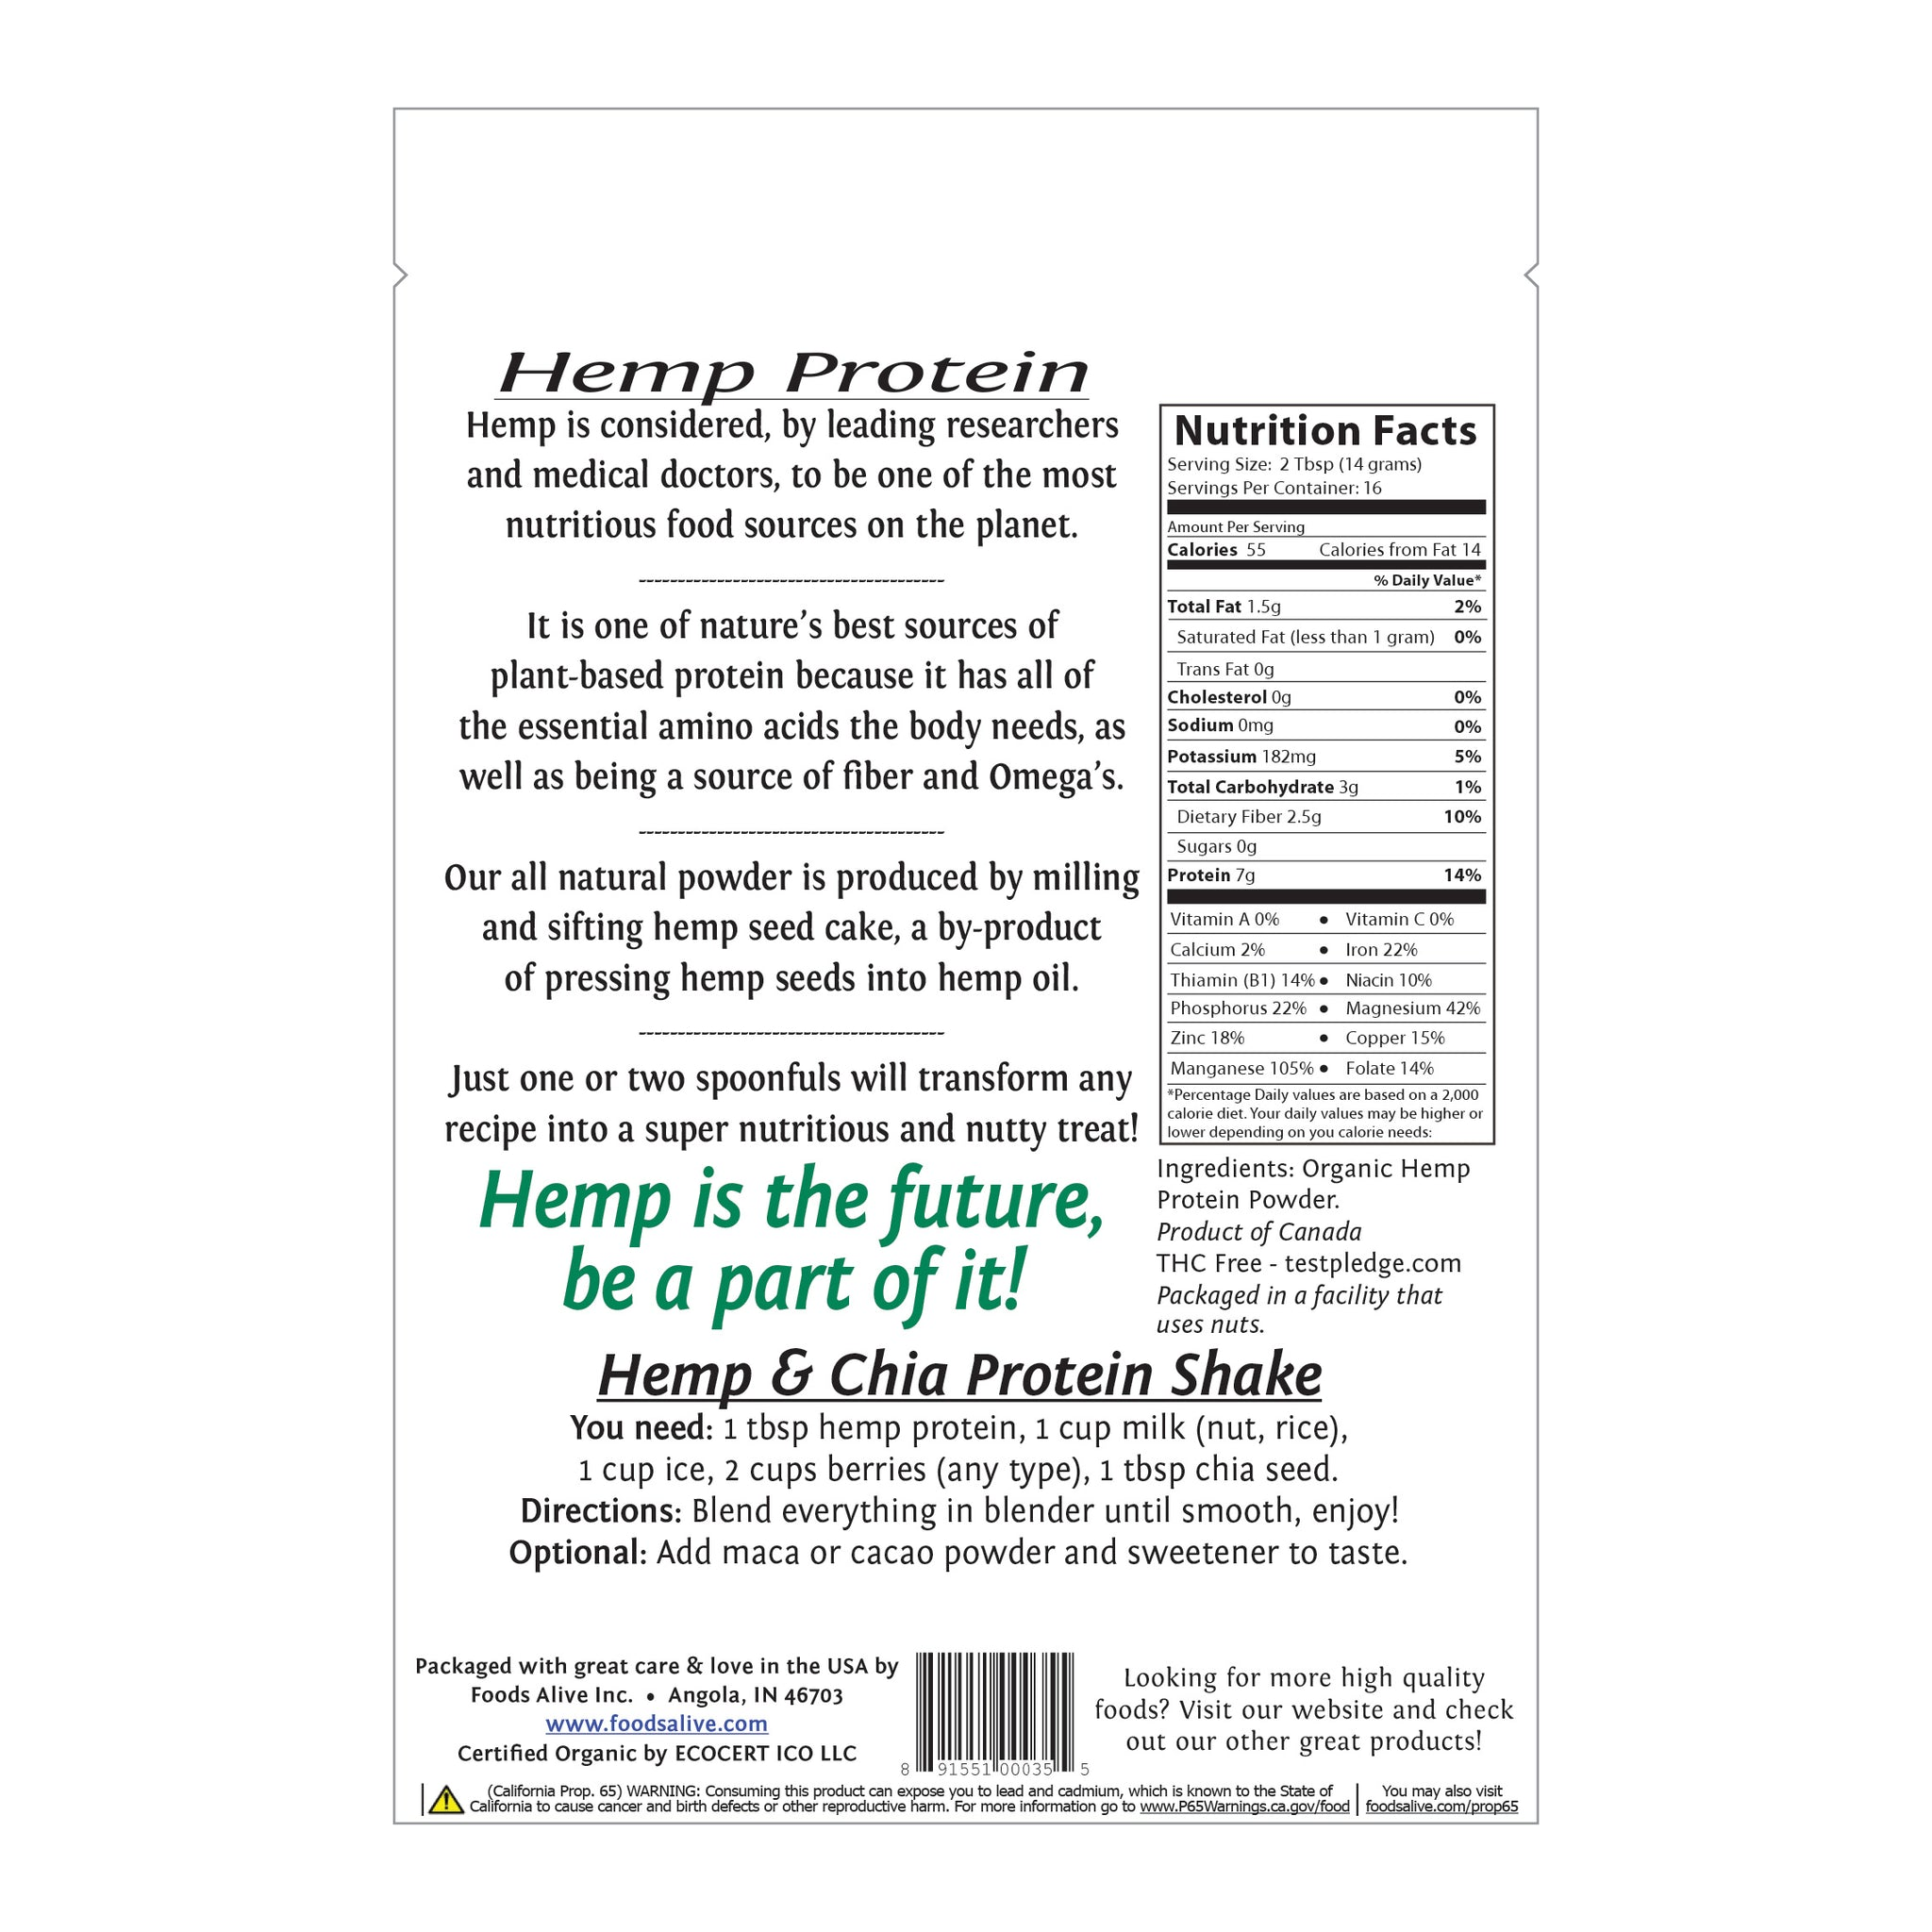 Foods Alive - Organic Hemp Protein Powder - 8 oz - Back